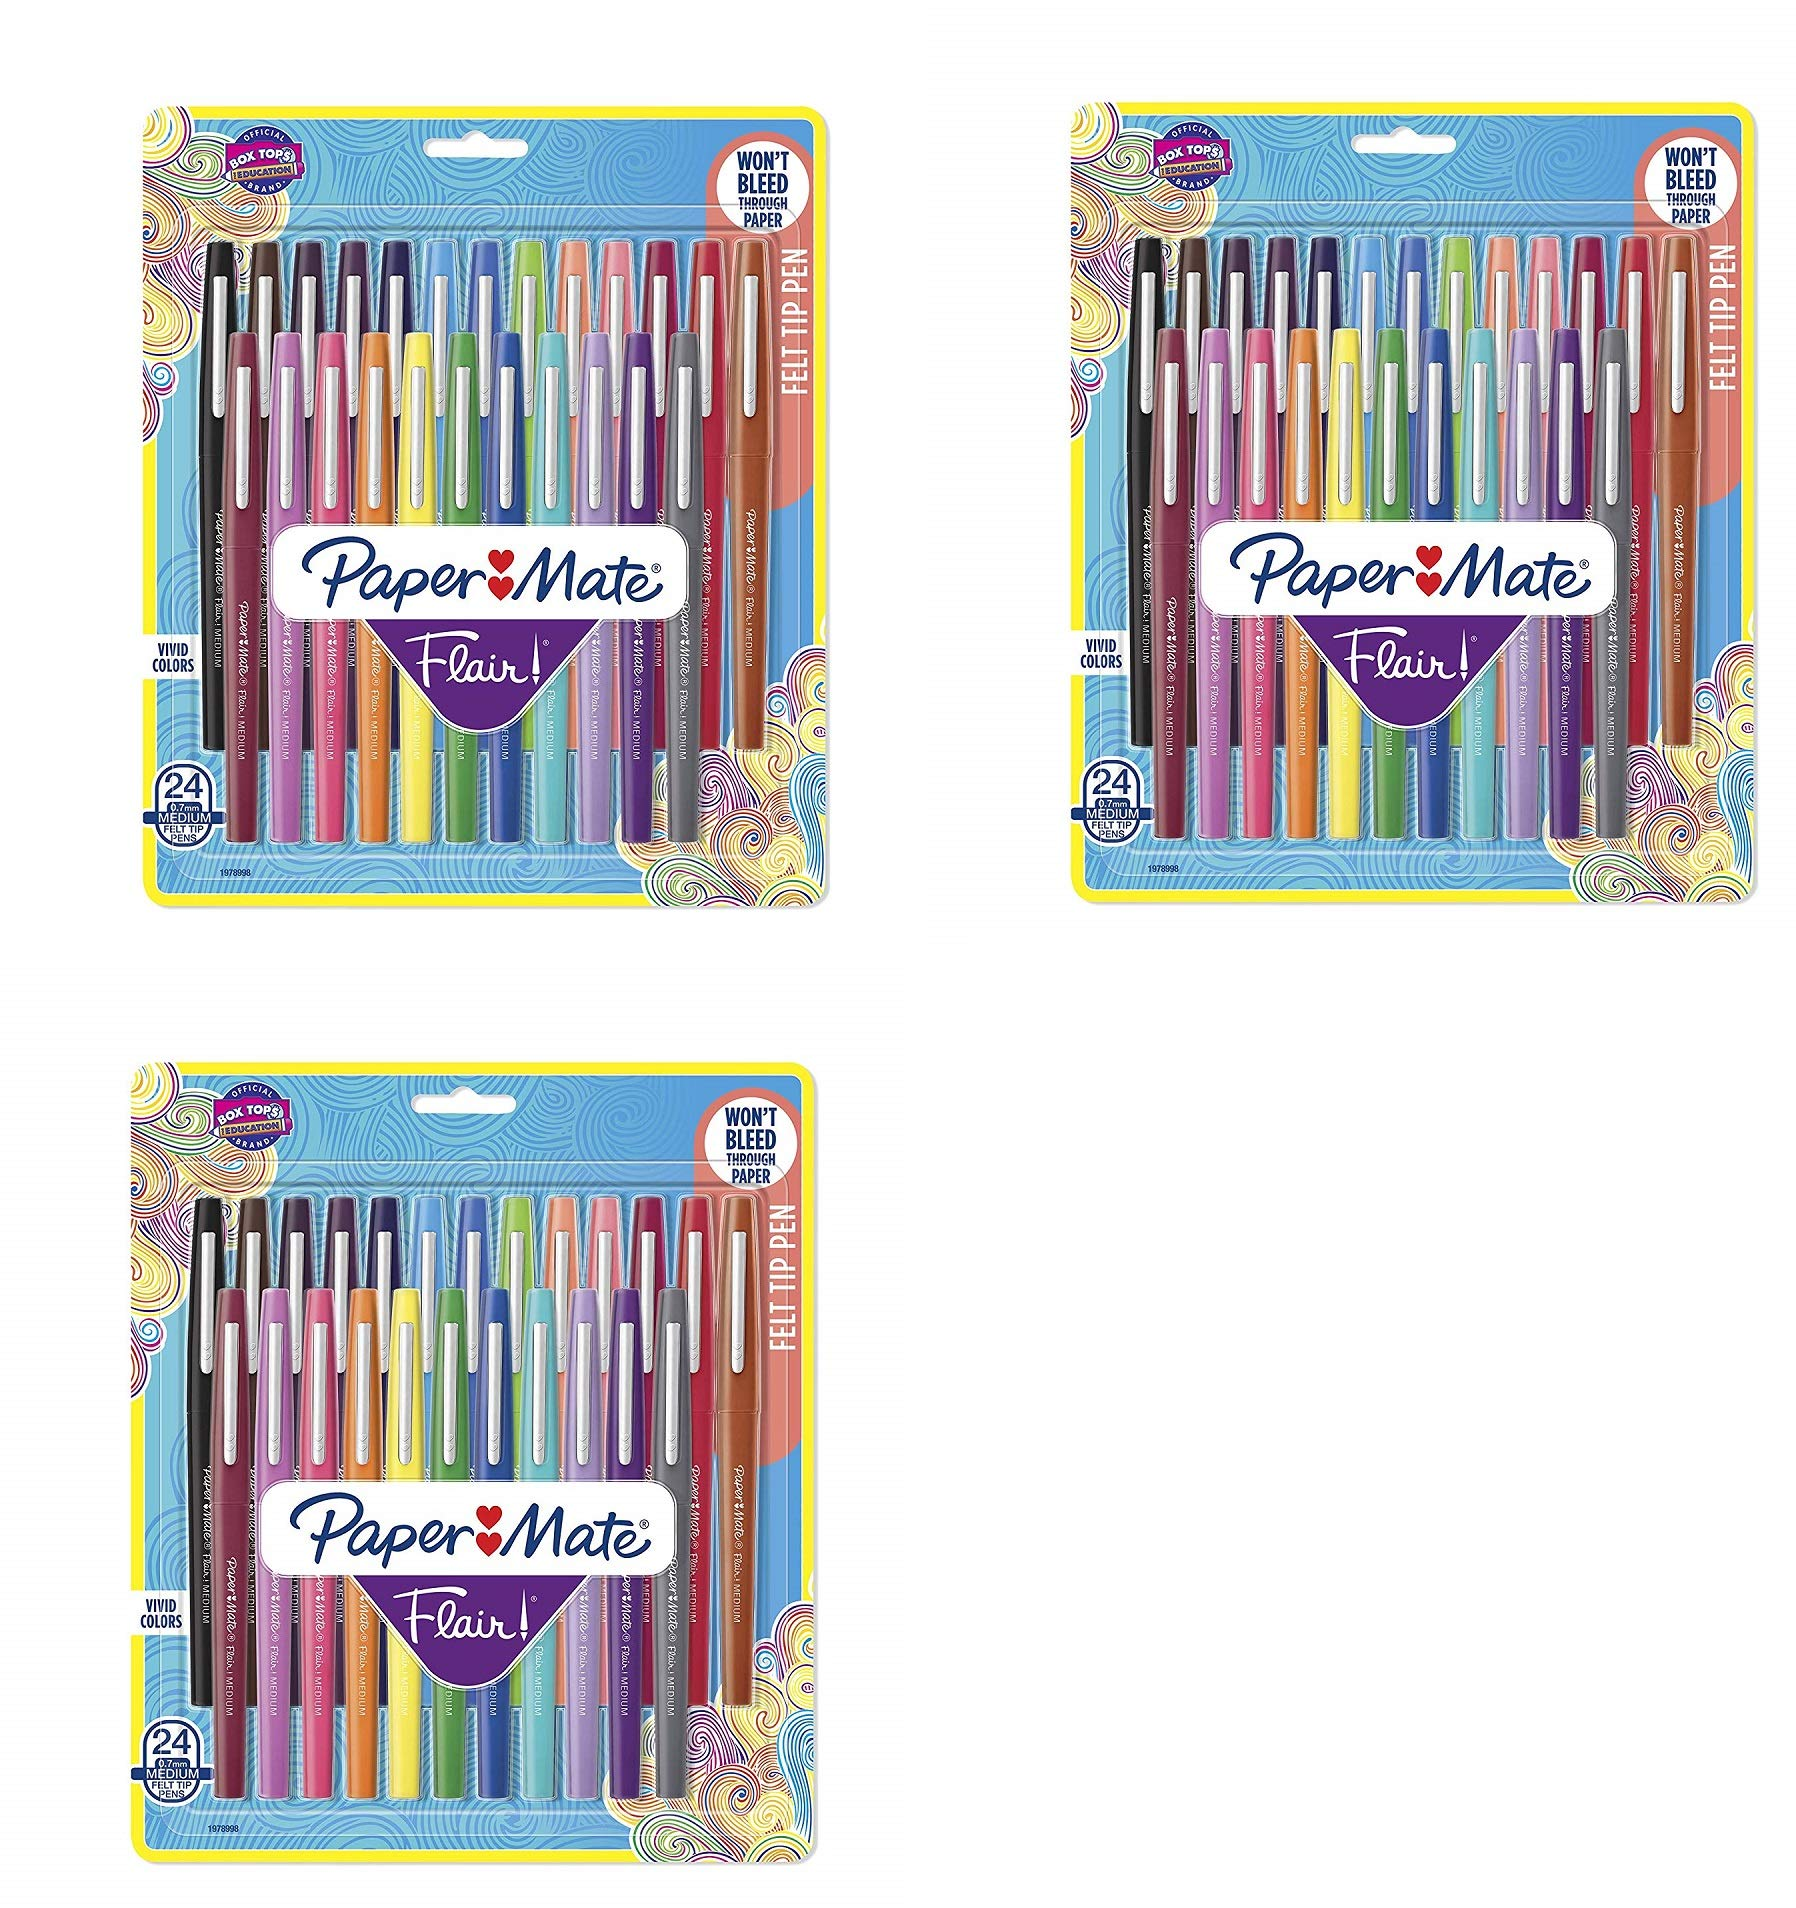 Flair Felt Tip Pens, Medium Point (0.7mm), Assorted Colors, 24 Count,